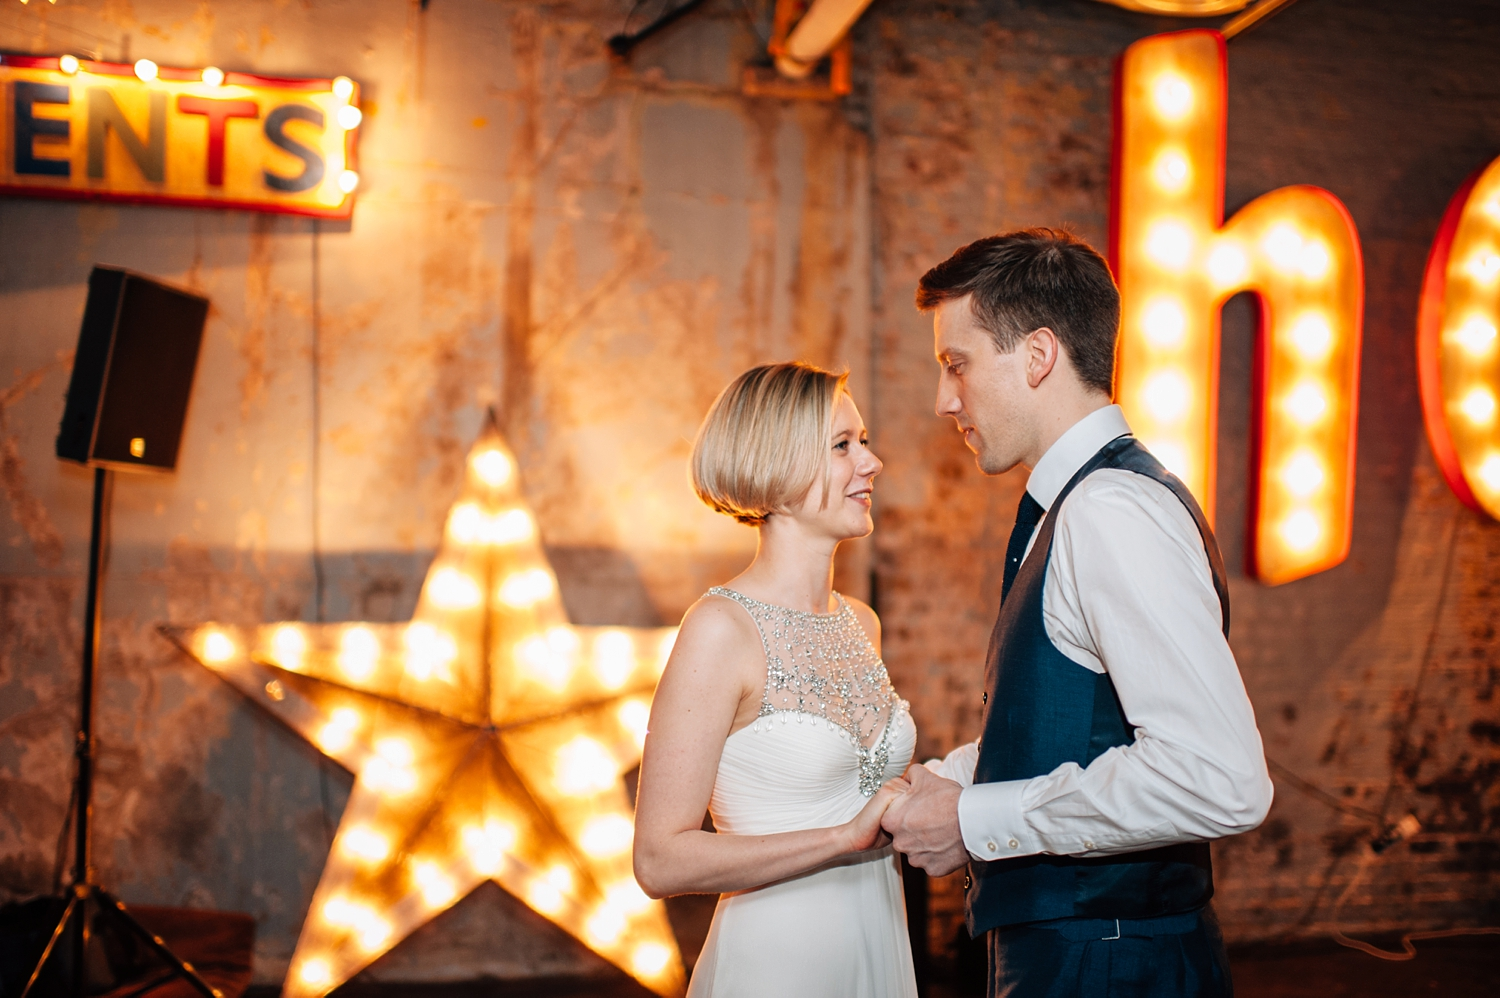 0212-lisa-devine-alternative-wedding-photography-london-hackney-dalston-london-photography-townhall-hotel.JPG